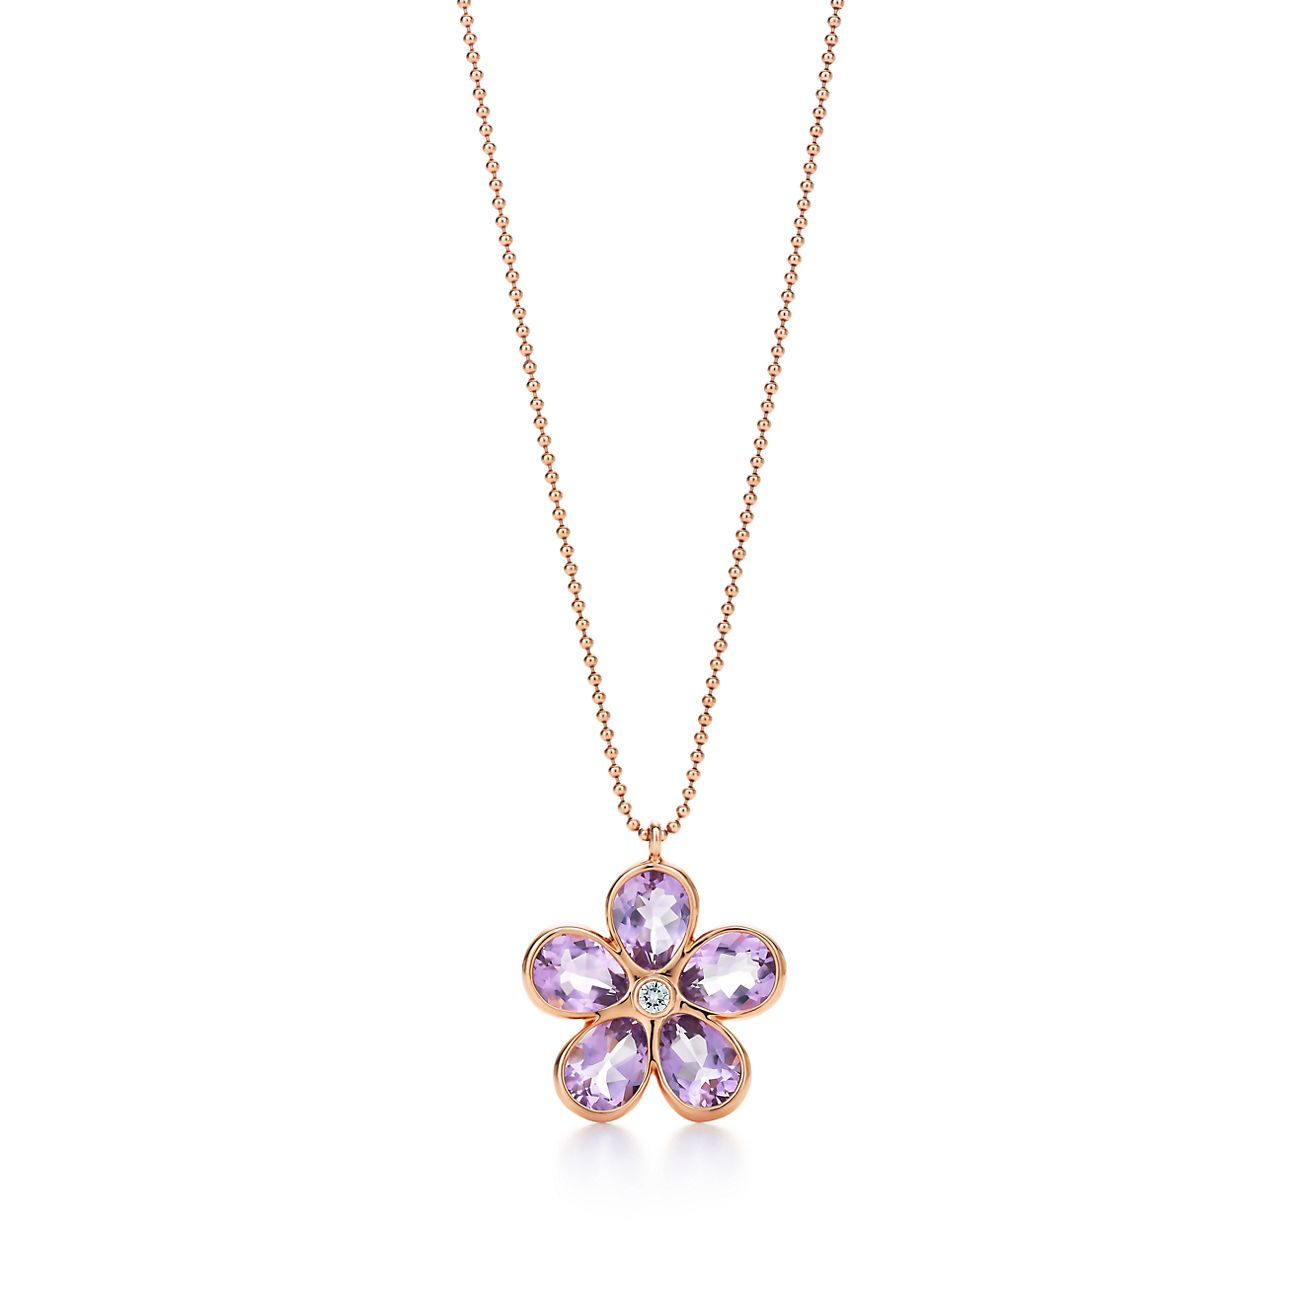 4fbd87251 ... tiffany sparklers flower pendant in 18k rose gold with amethysts and a  diamond. tiffany co; tiffany sparklers amethyst earrings ...